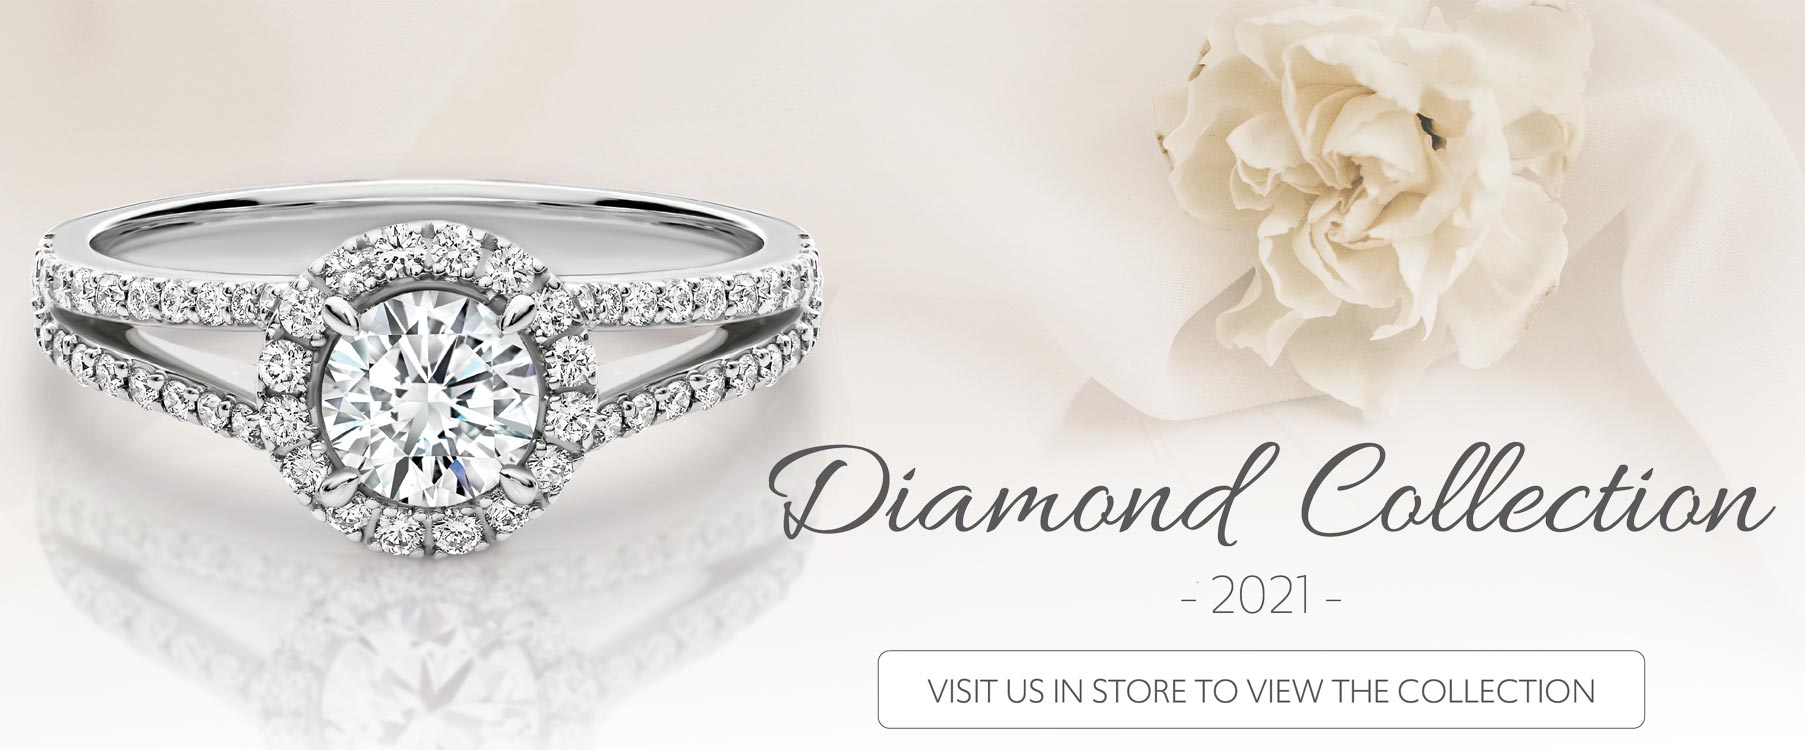 Diamond Collection At Stearns Showcase Jewellers